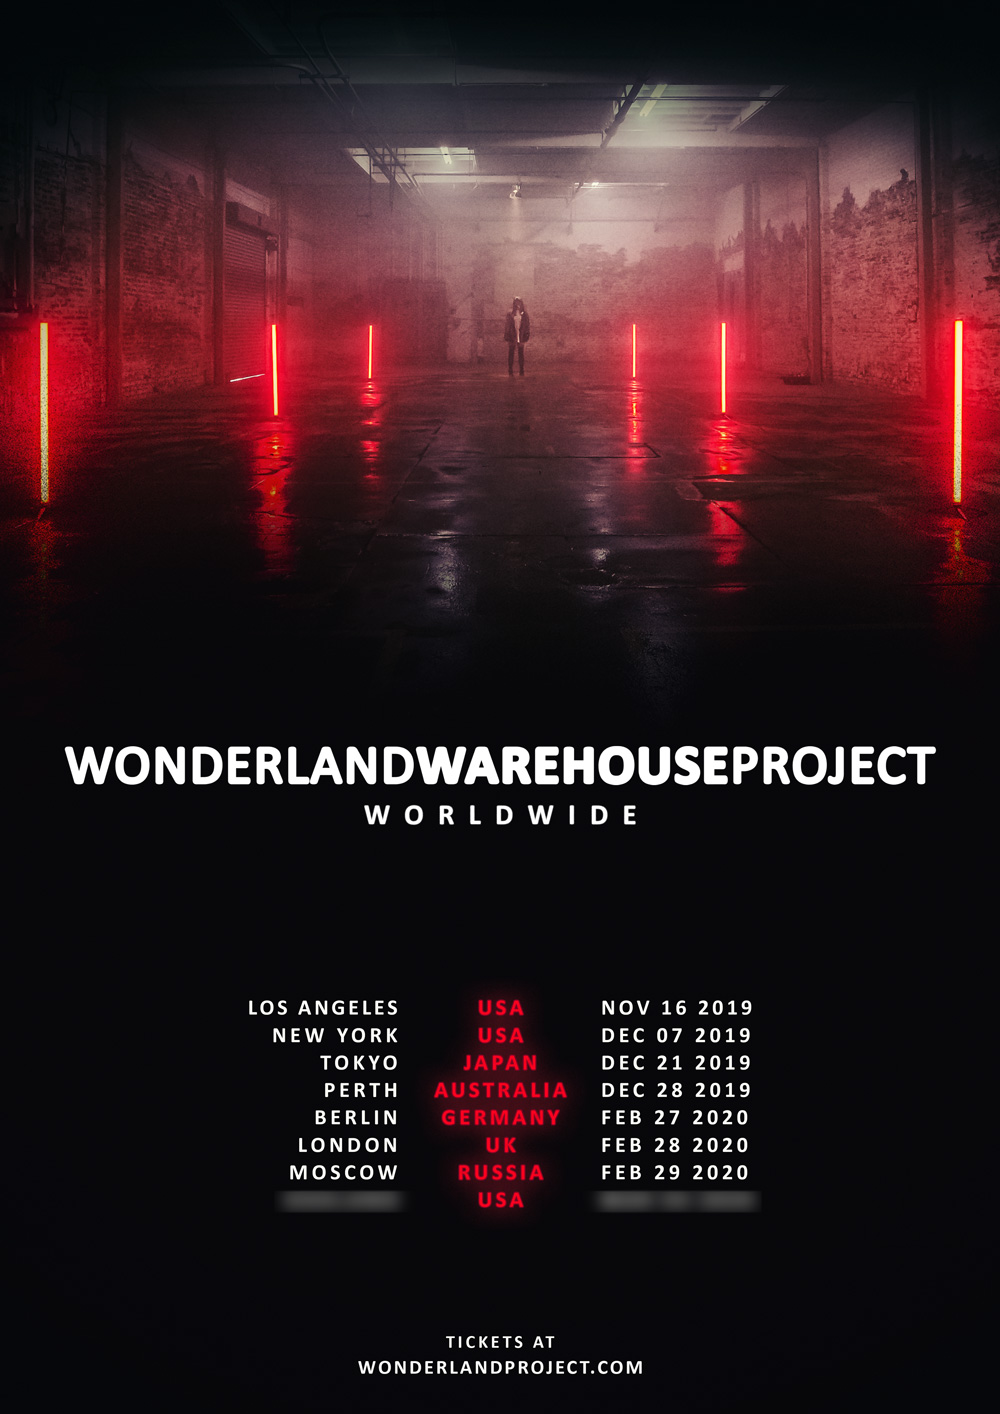 Alison Wonderland Wonderland Warehouse Project Worldwide